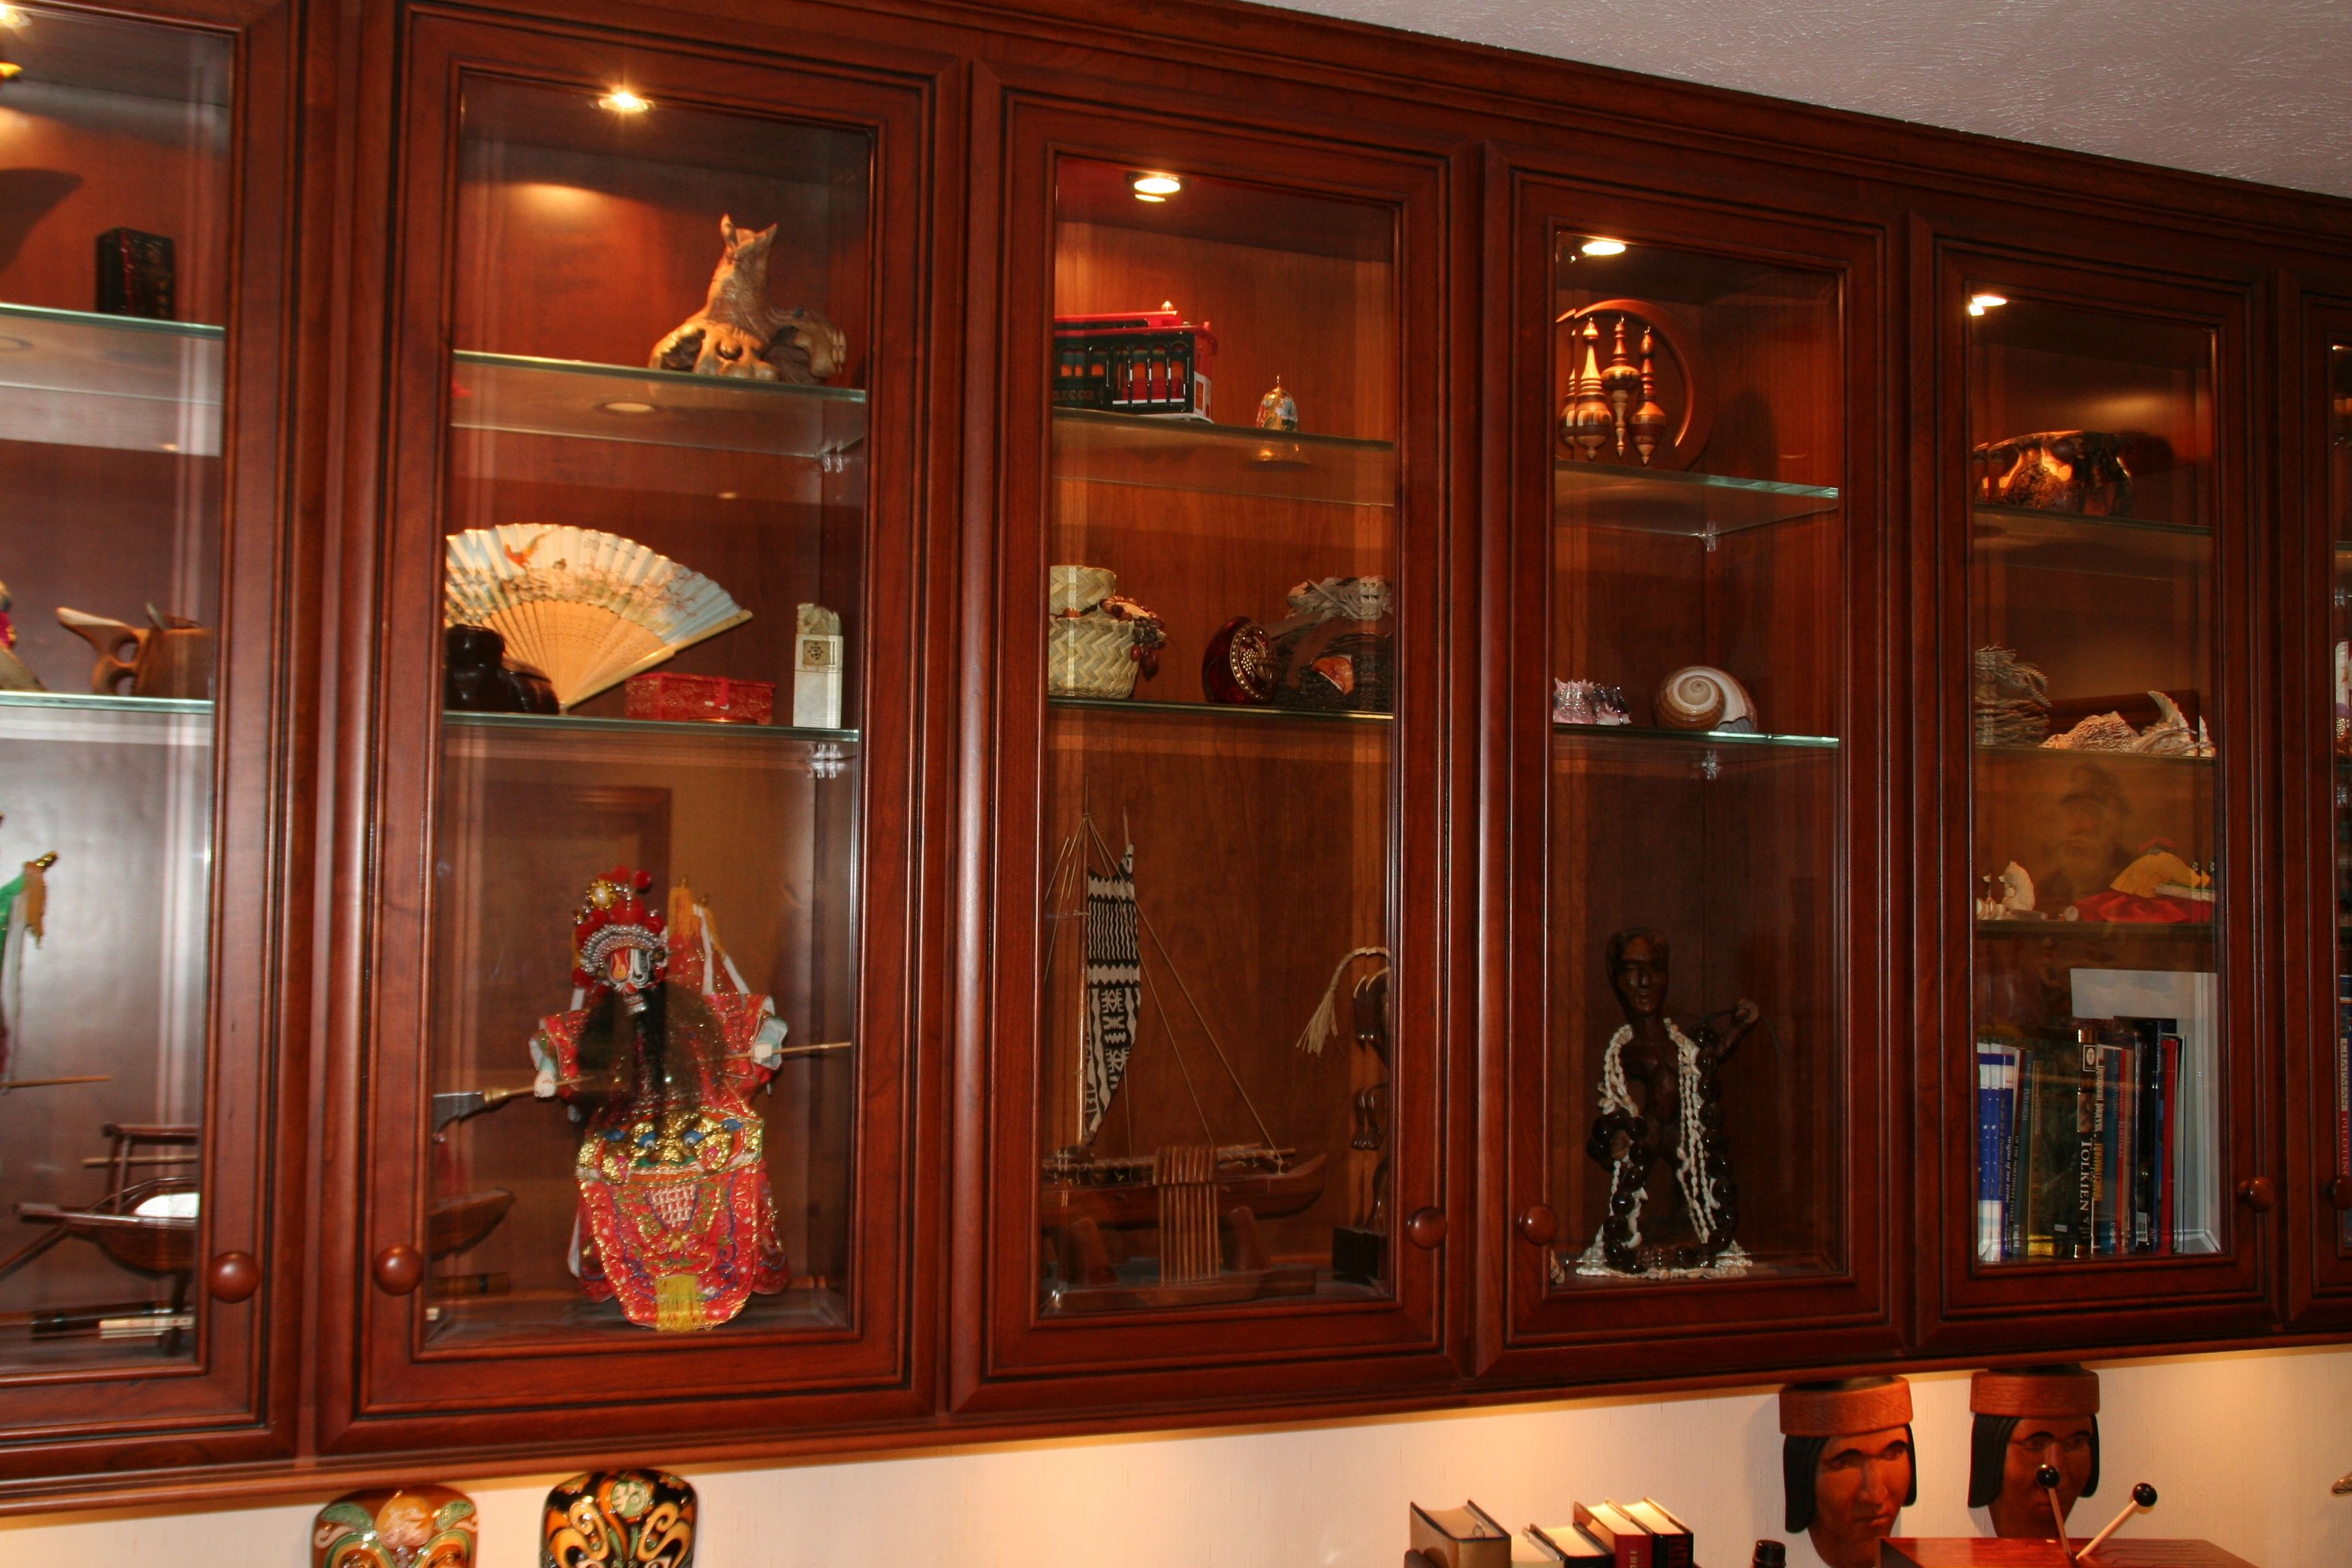 Put glass inserts cabinet doors httpadvice tips pinterest bedroom bubble glass kitchen cabinet doors featured categories ice improvements refference replacement with planetlyrics Gallery